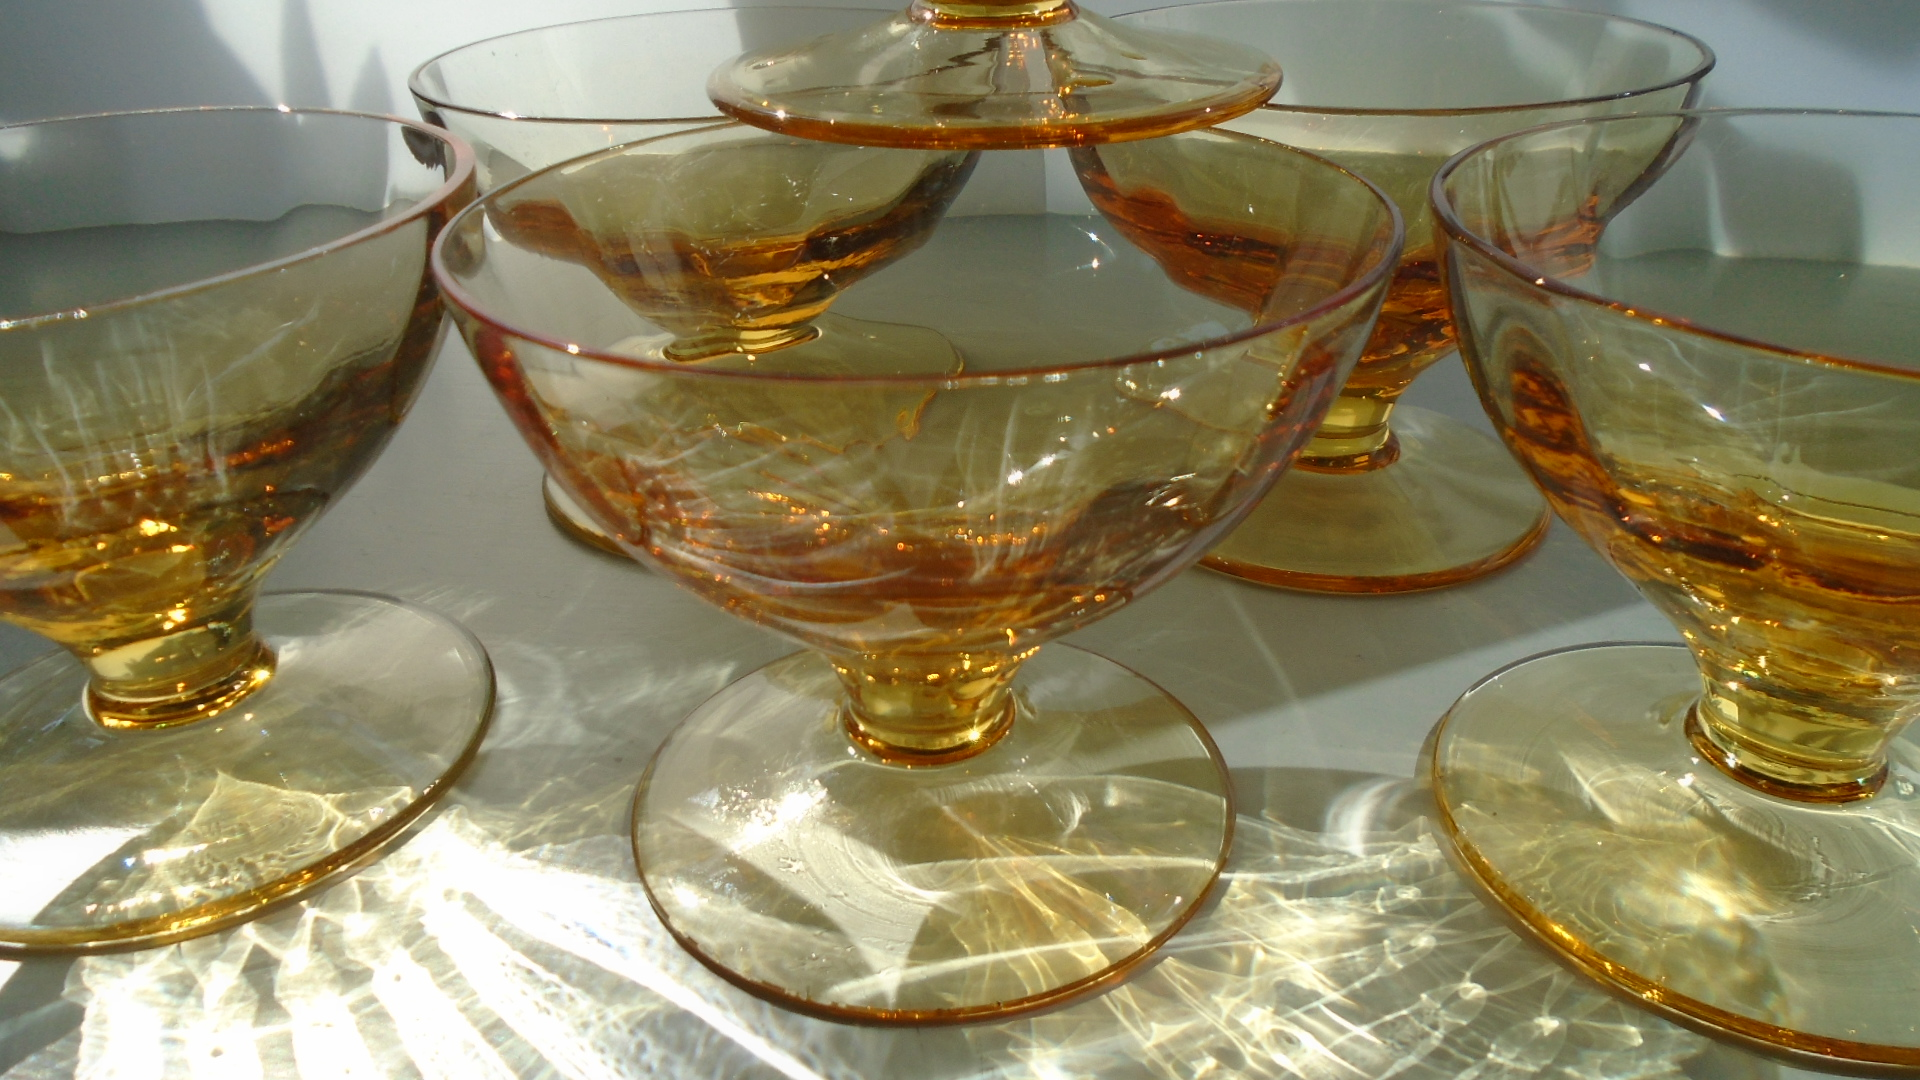 SET OF 6no SUPER CONDITION 50s VINTAGE WHITEFRIARS GLASS AMBER PATTERN M91 SUNDAE DISHES by William Wilson as  seen in the 1957 Catalogue.